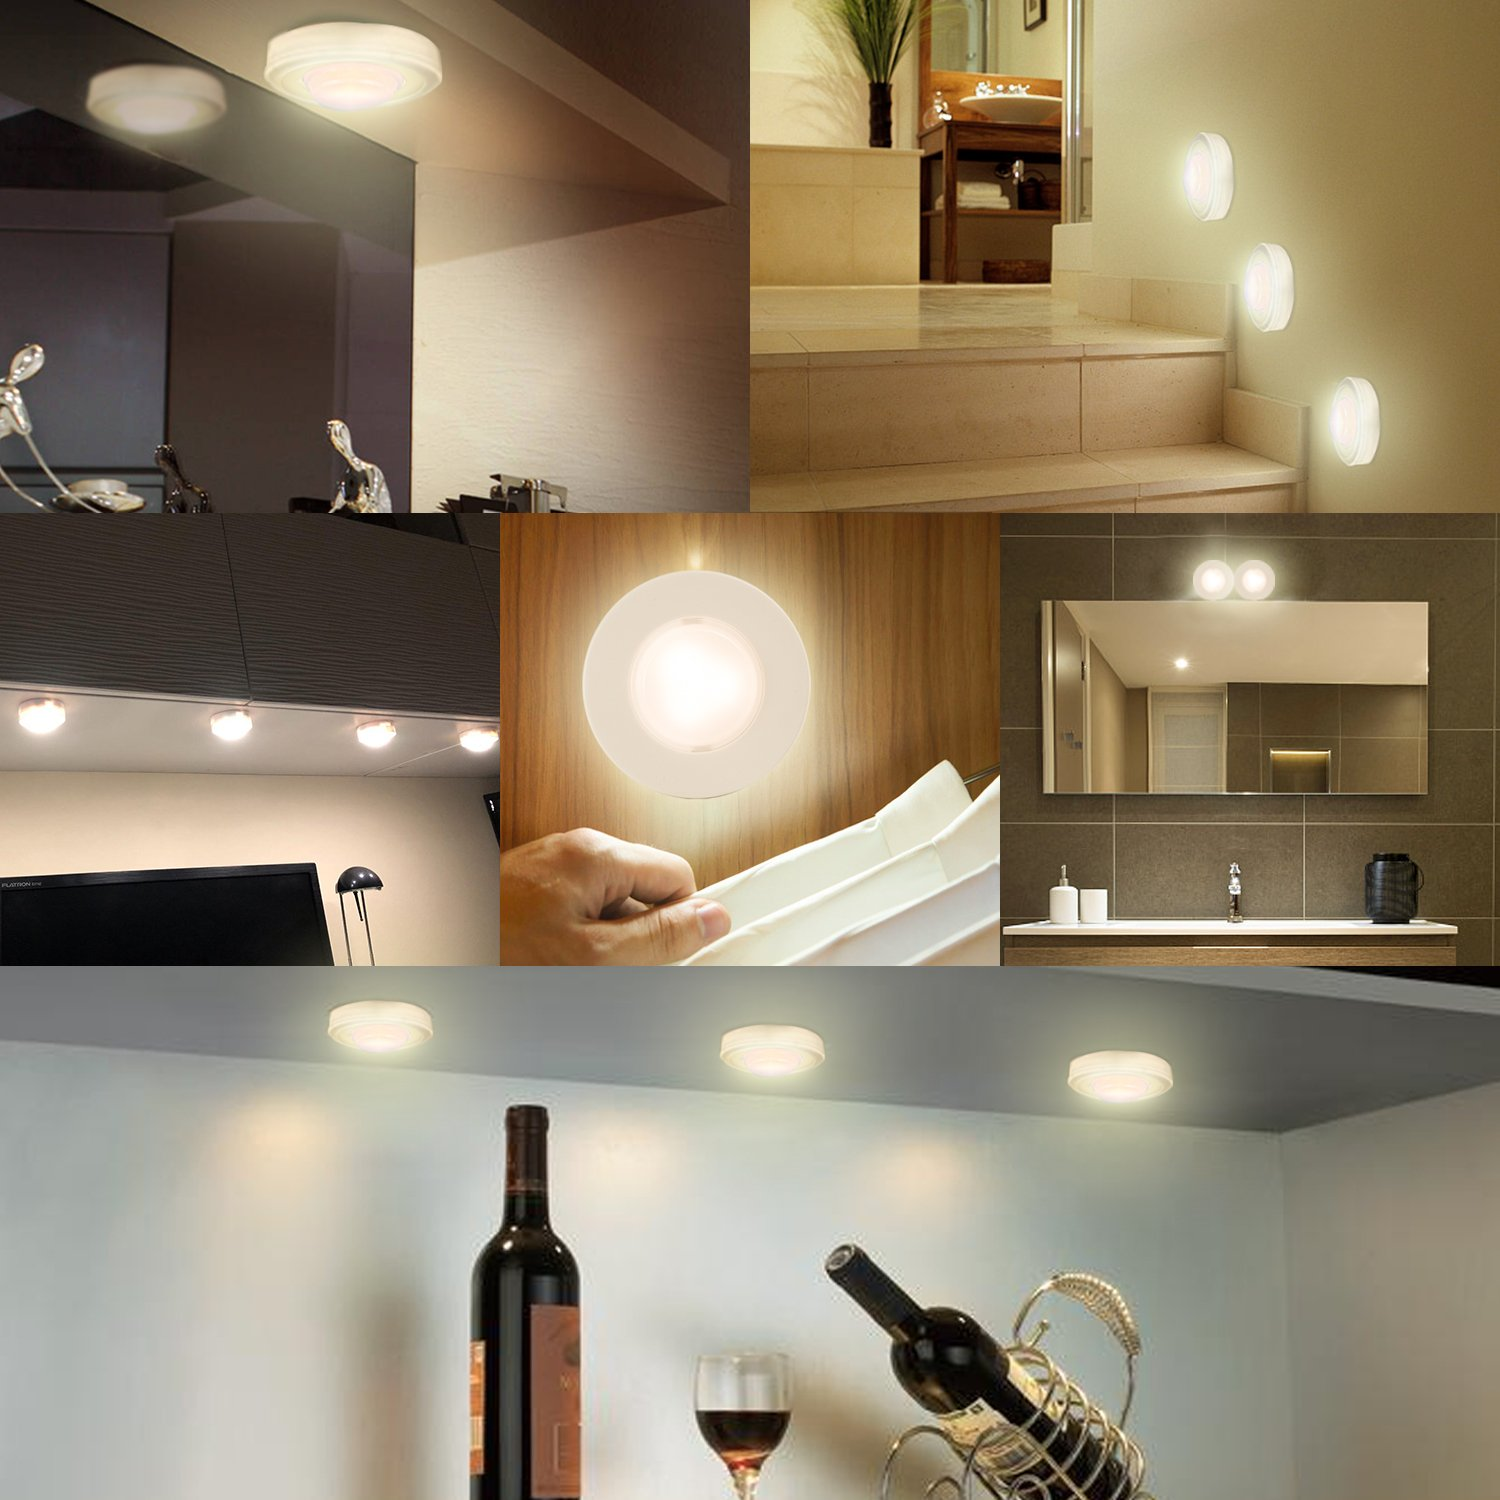 Arvidsson Led Under Cabinet Lighting, Wireless Led Puck Lights With